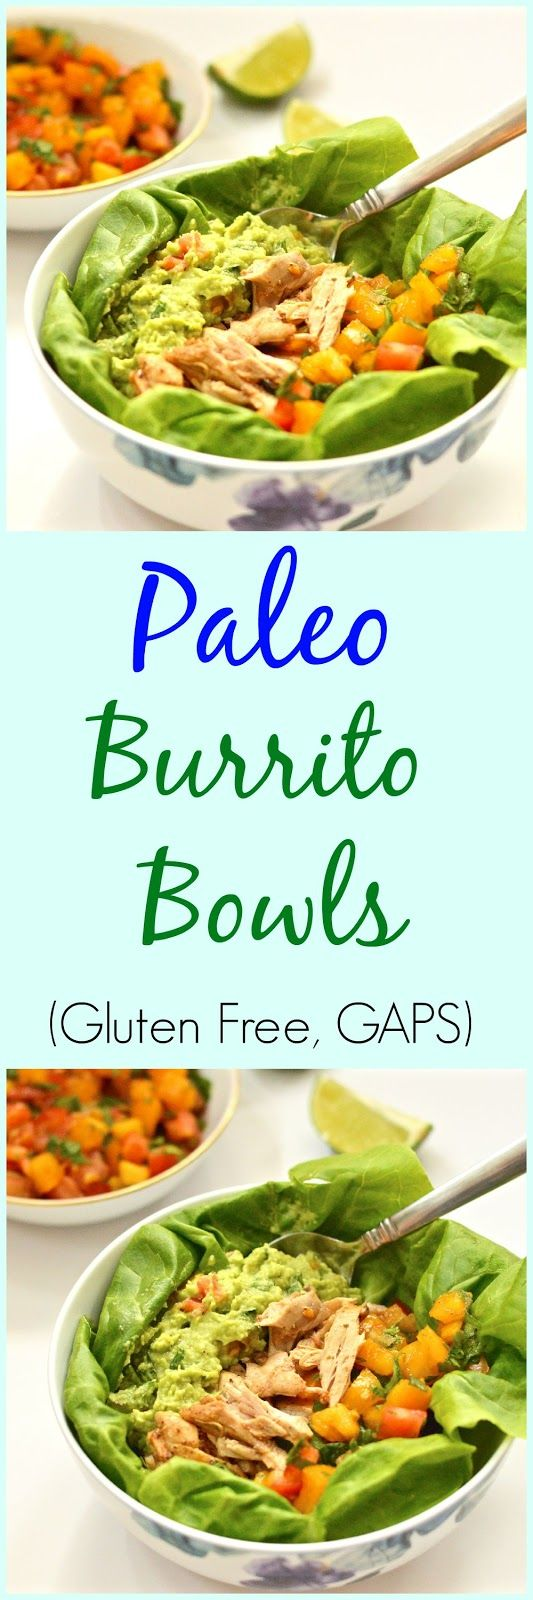 Pure and Simple Nourishment : Burrito Bowl Date Night Recipe and Paleo Takeout Review (Gluten Free, Paleo)